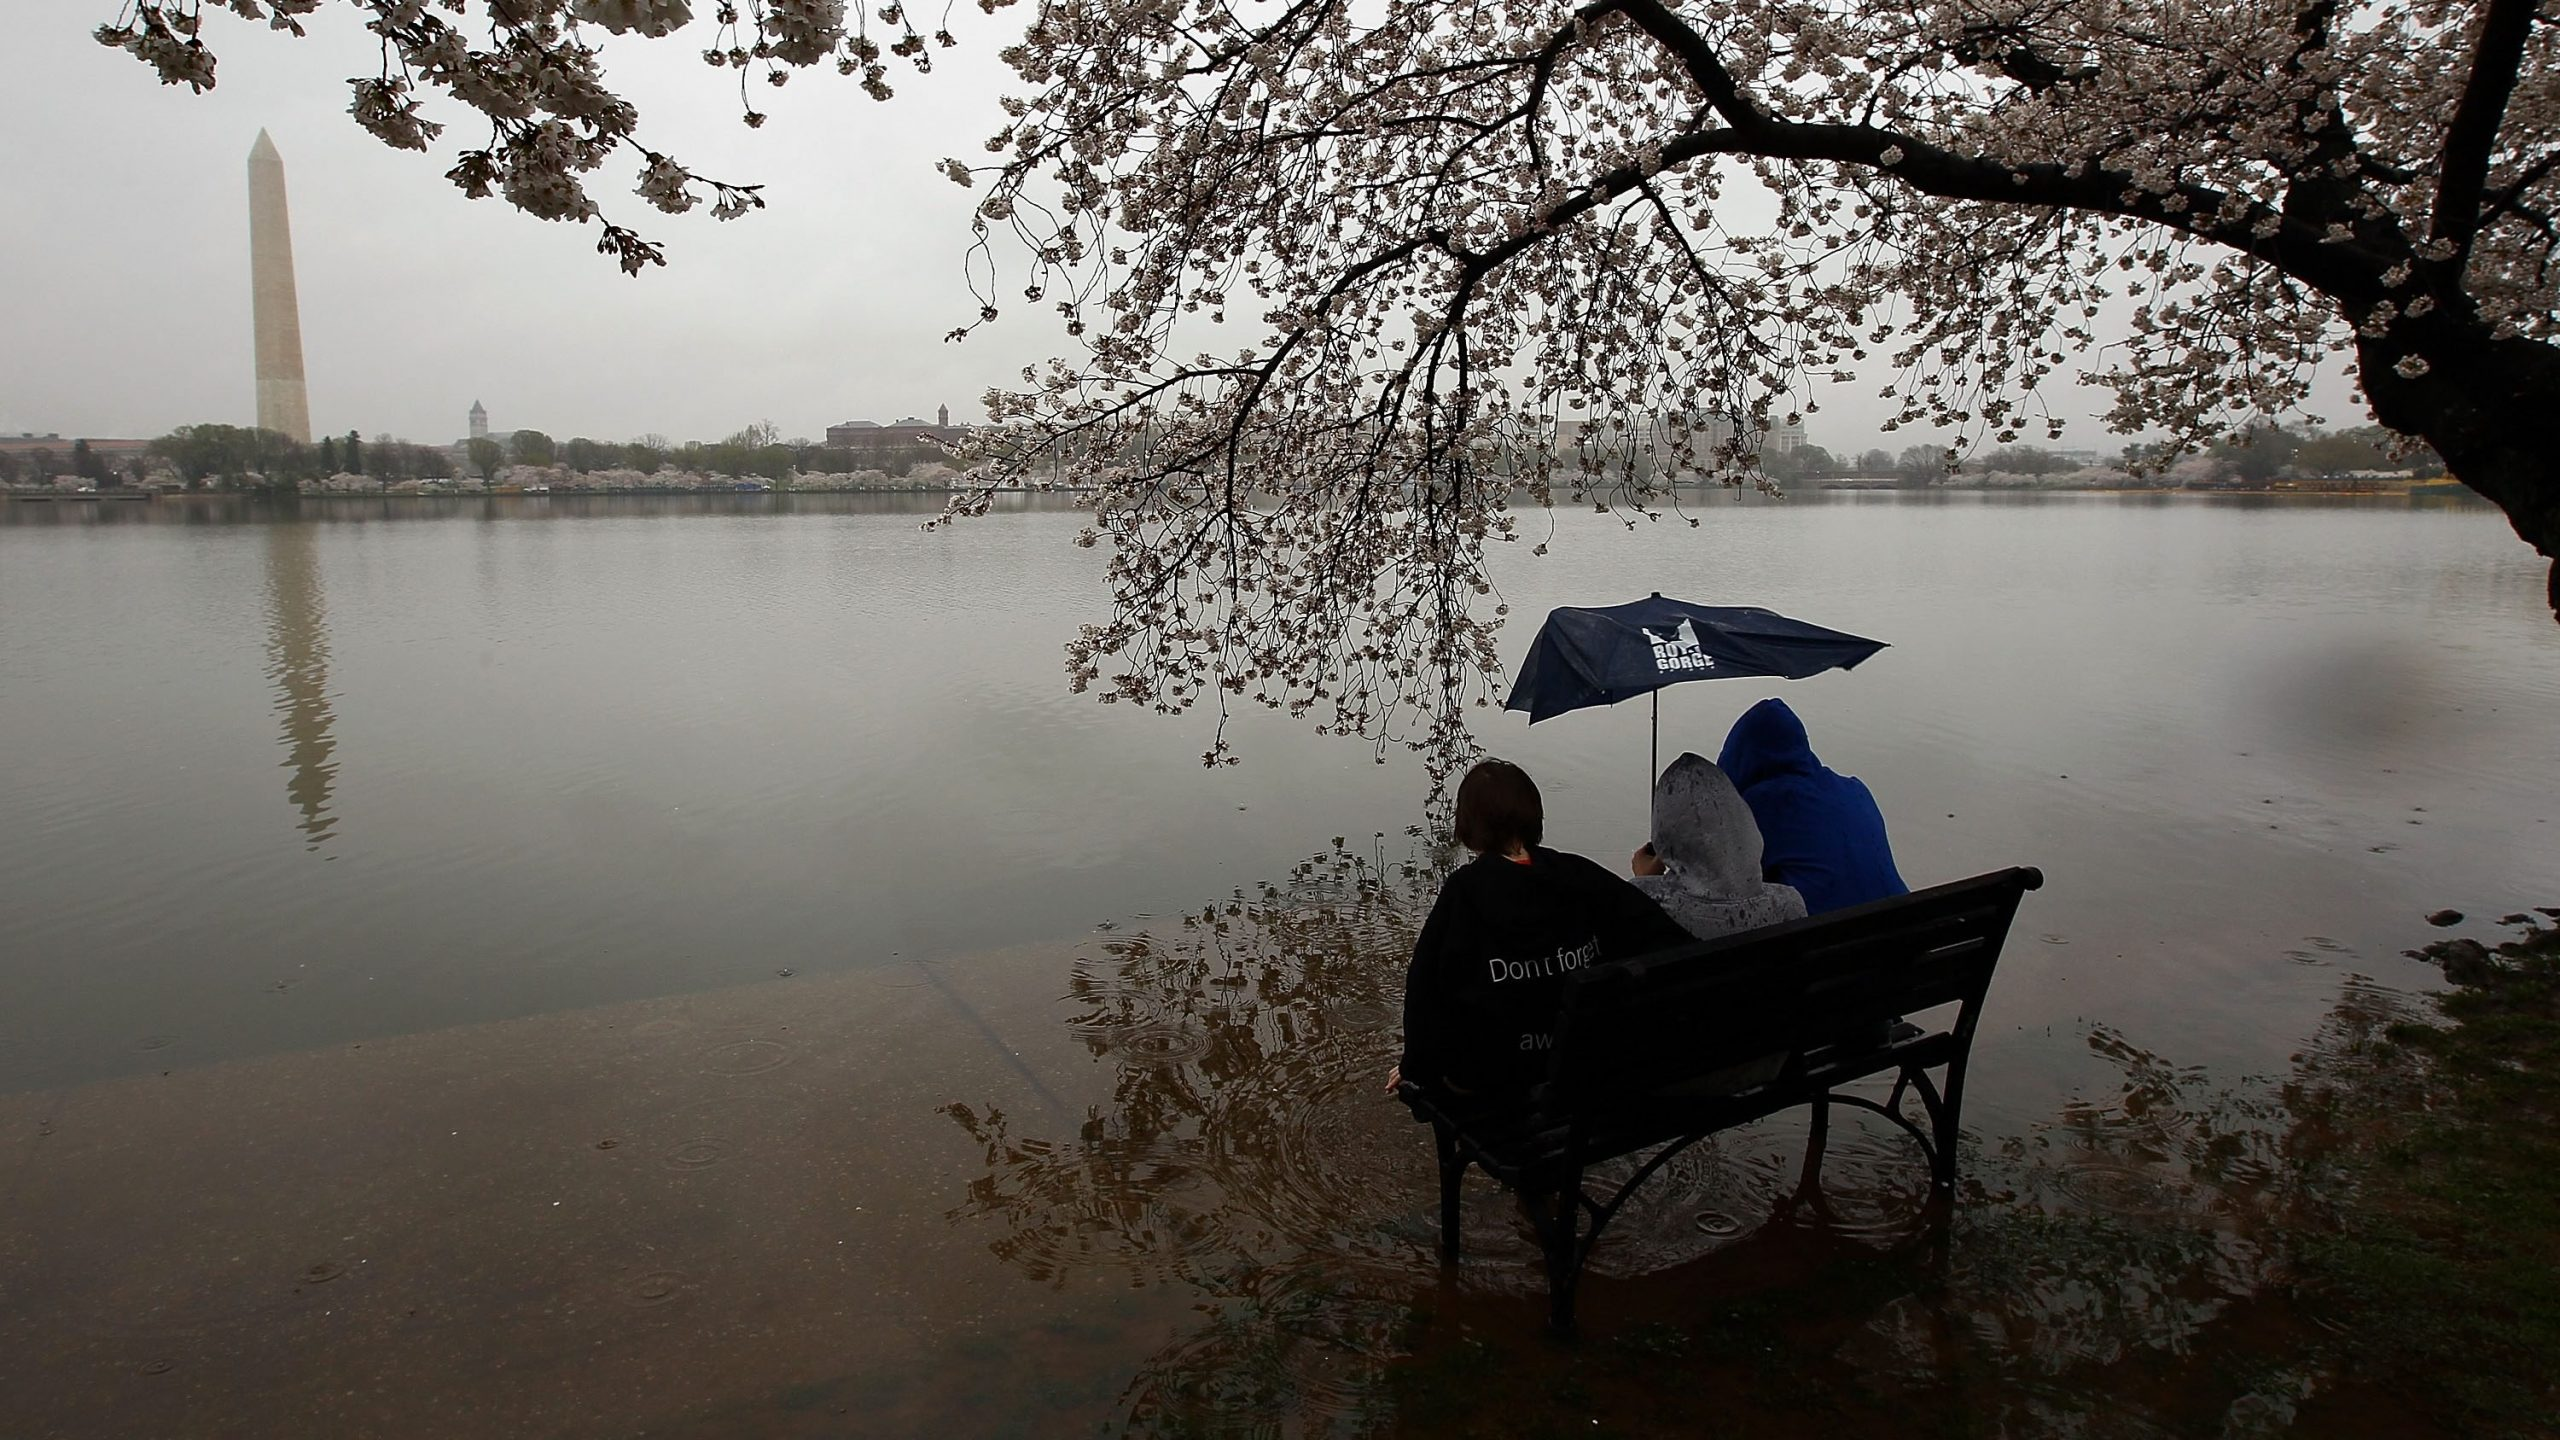 Maxewell Rees and his brothers Daniel Rees and Jackson Rees sit on a park bench partly submerged due to seasonal flooding next to the Tidal Basin as cherry blossoms begin their annual blooming season March 29, 2010 in Washington, DC.